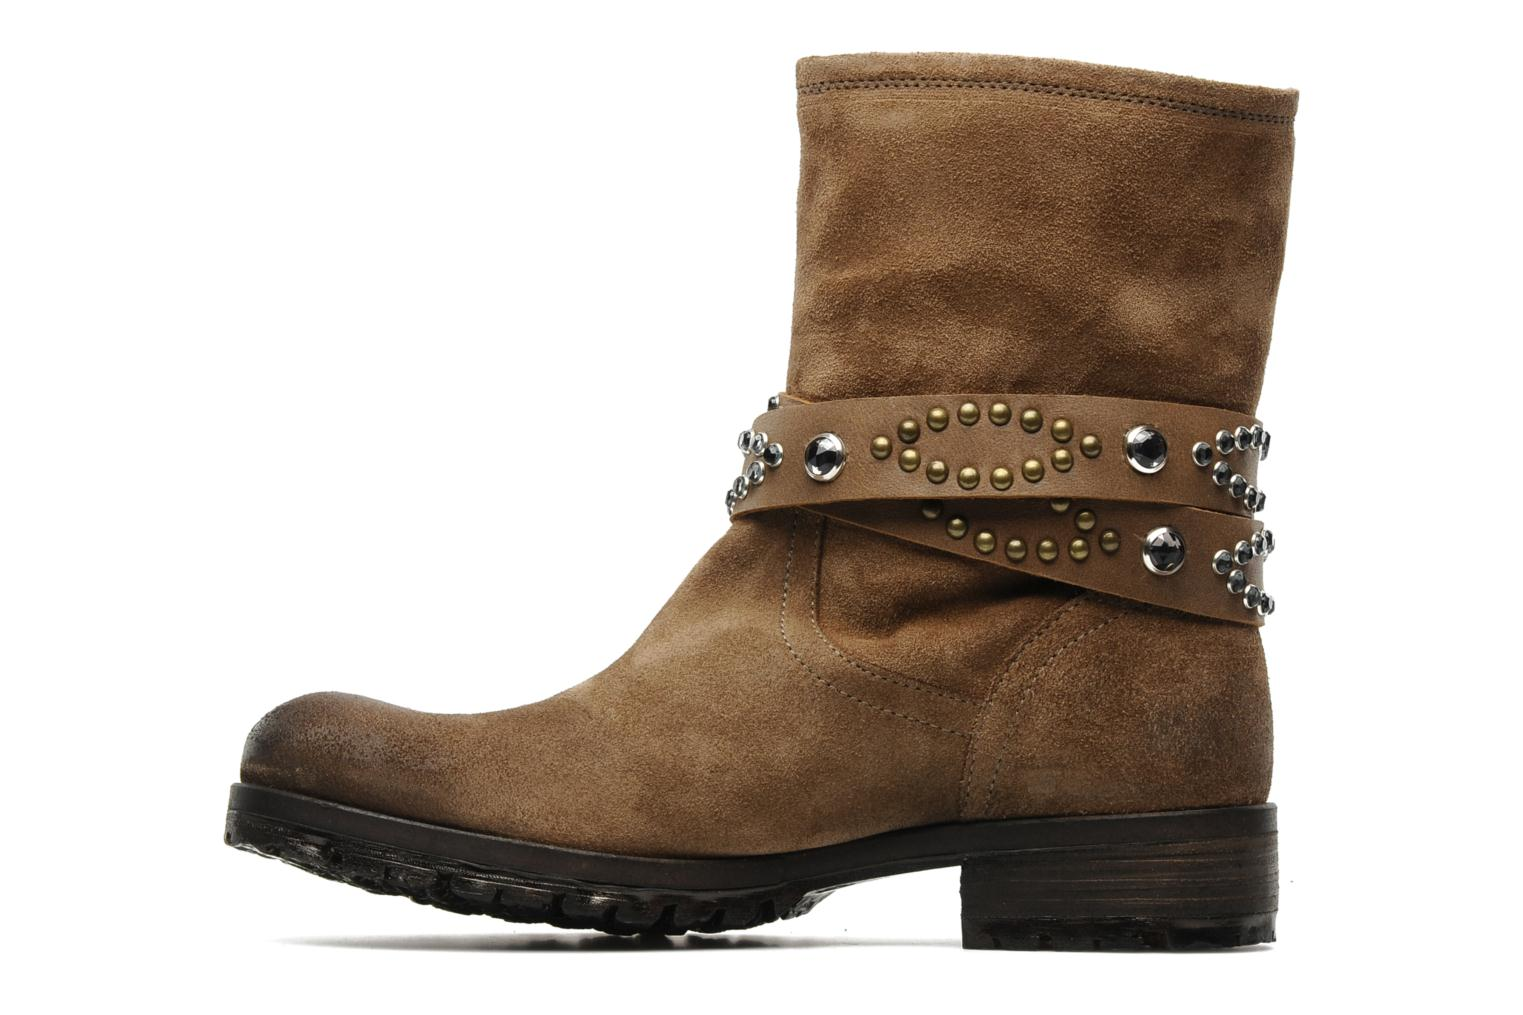 Bottines et boots Folk'l Olexa Marron vue face